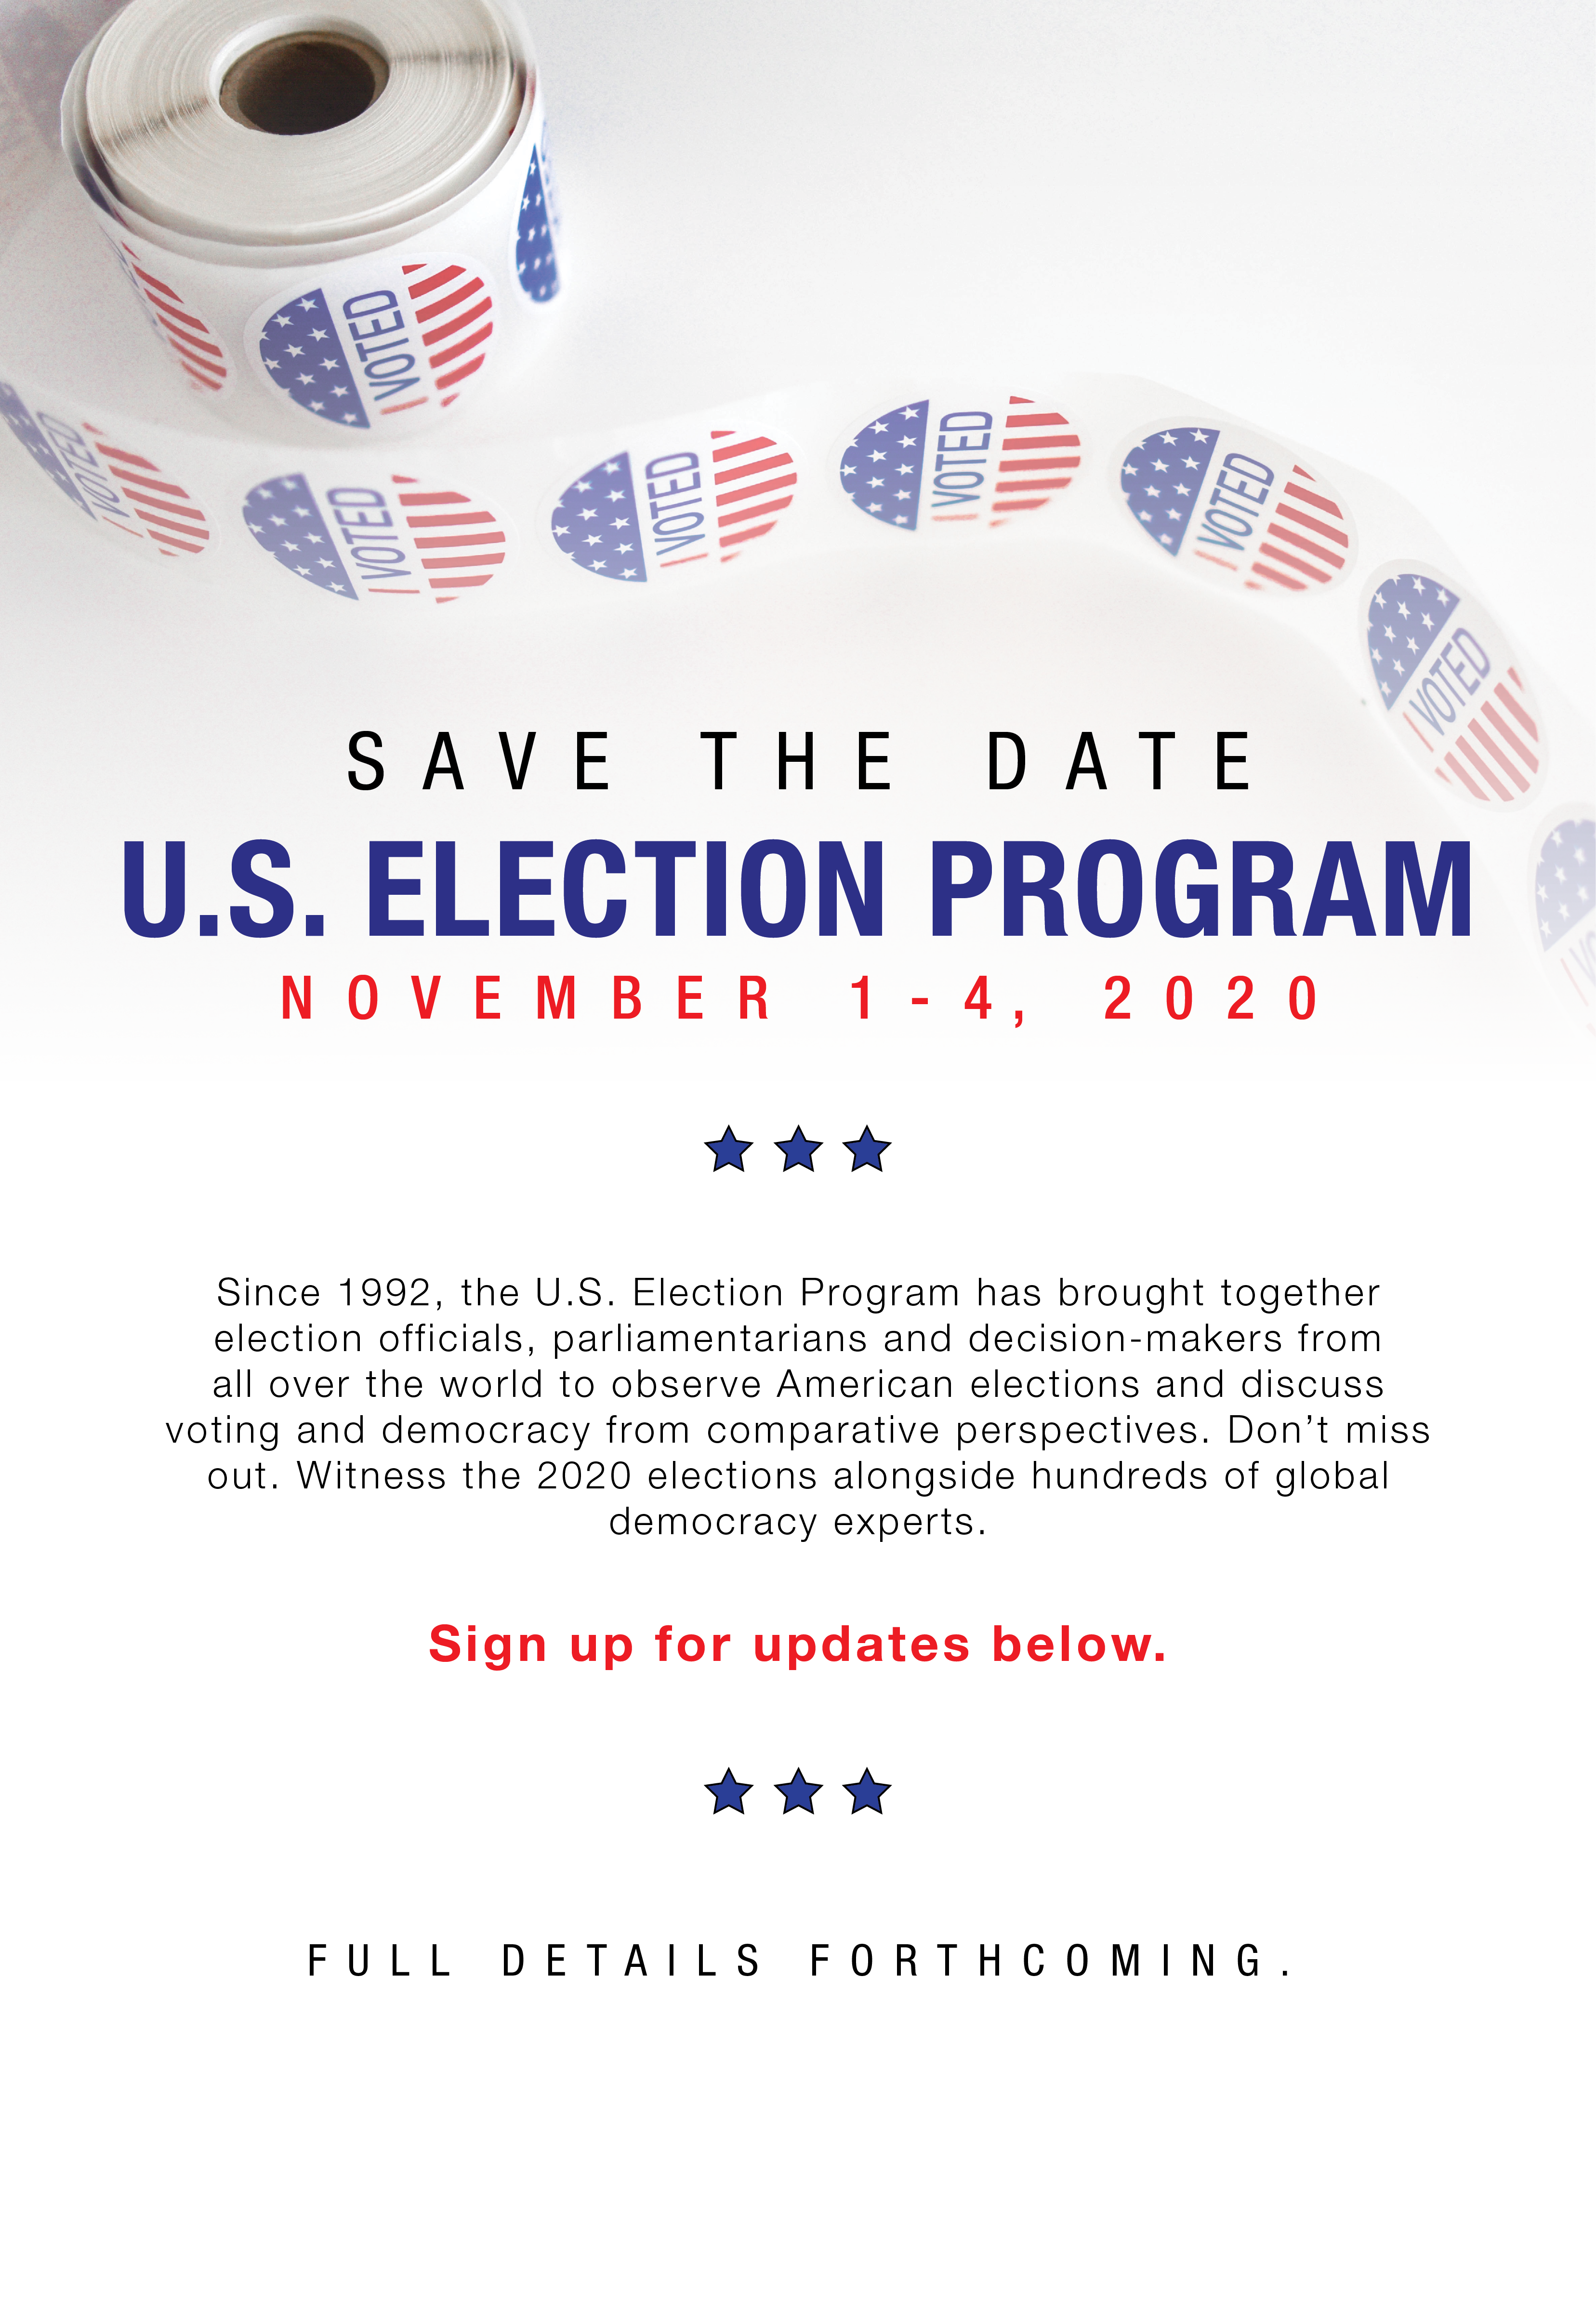 November 1-4, 2020 | The U.S. Election Program brings together election officials, parliamentarians and decision-makers to observe American elections and discuss voting and democracy from comparative perspectives. Full details forthcoming.